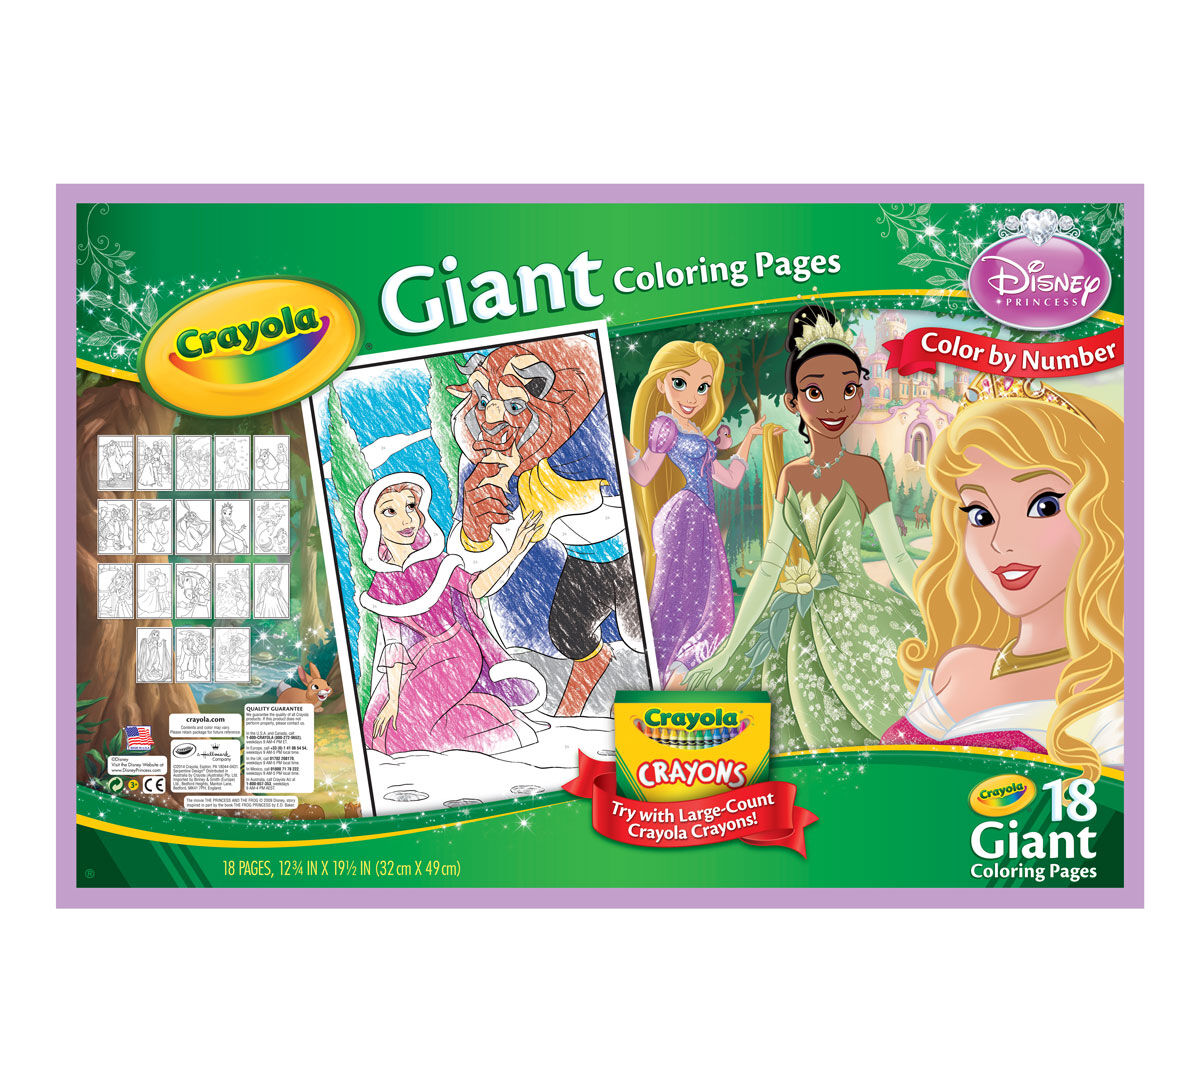 Crayola Giant Coloring Pages Disney Princess : Giant coloring pages disney princess crayola